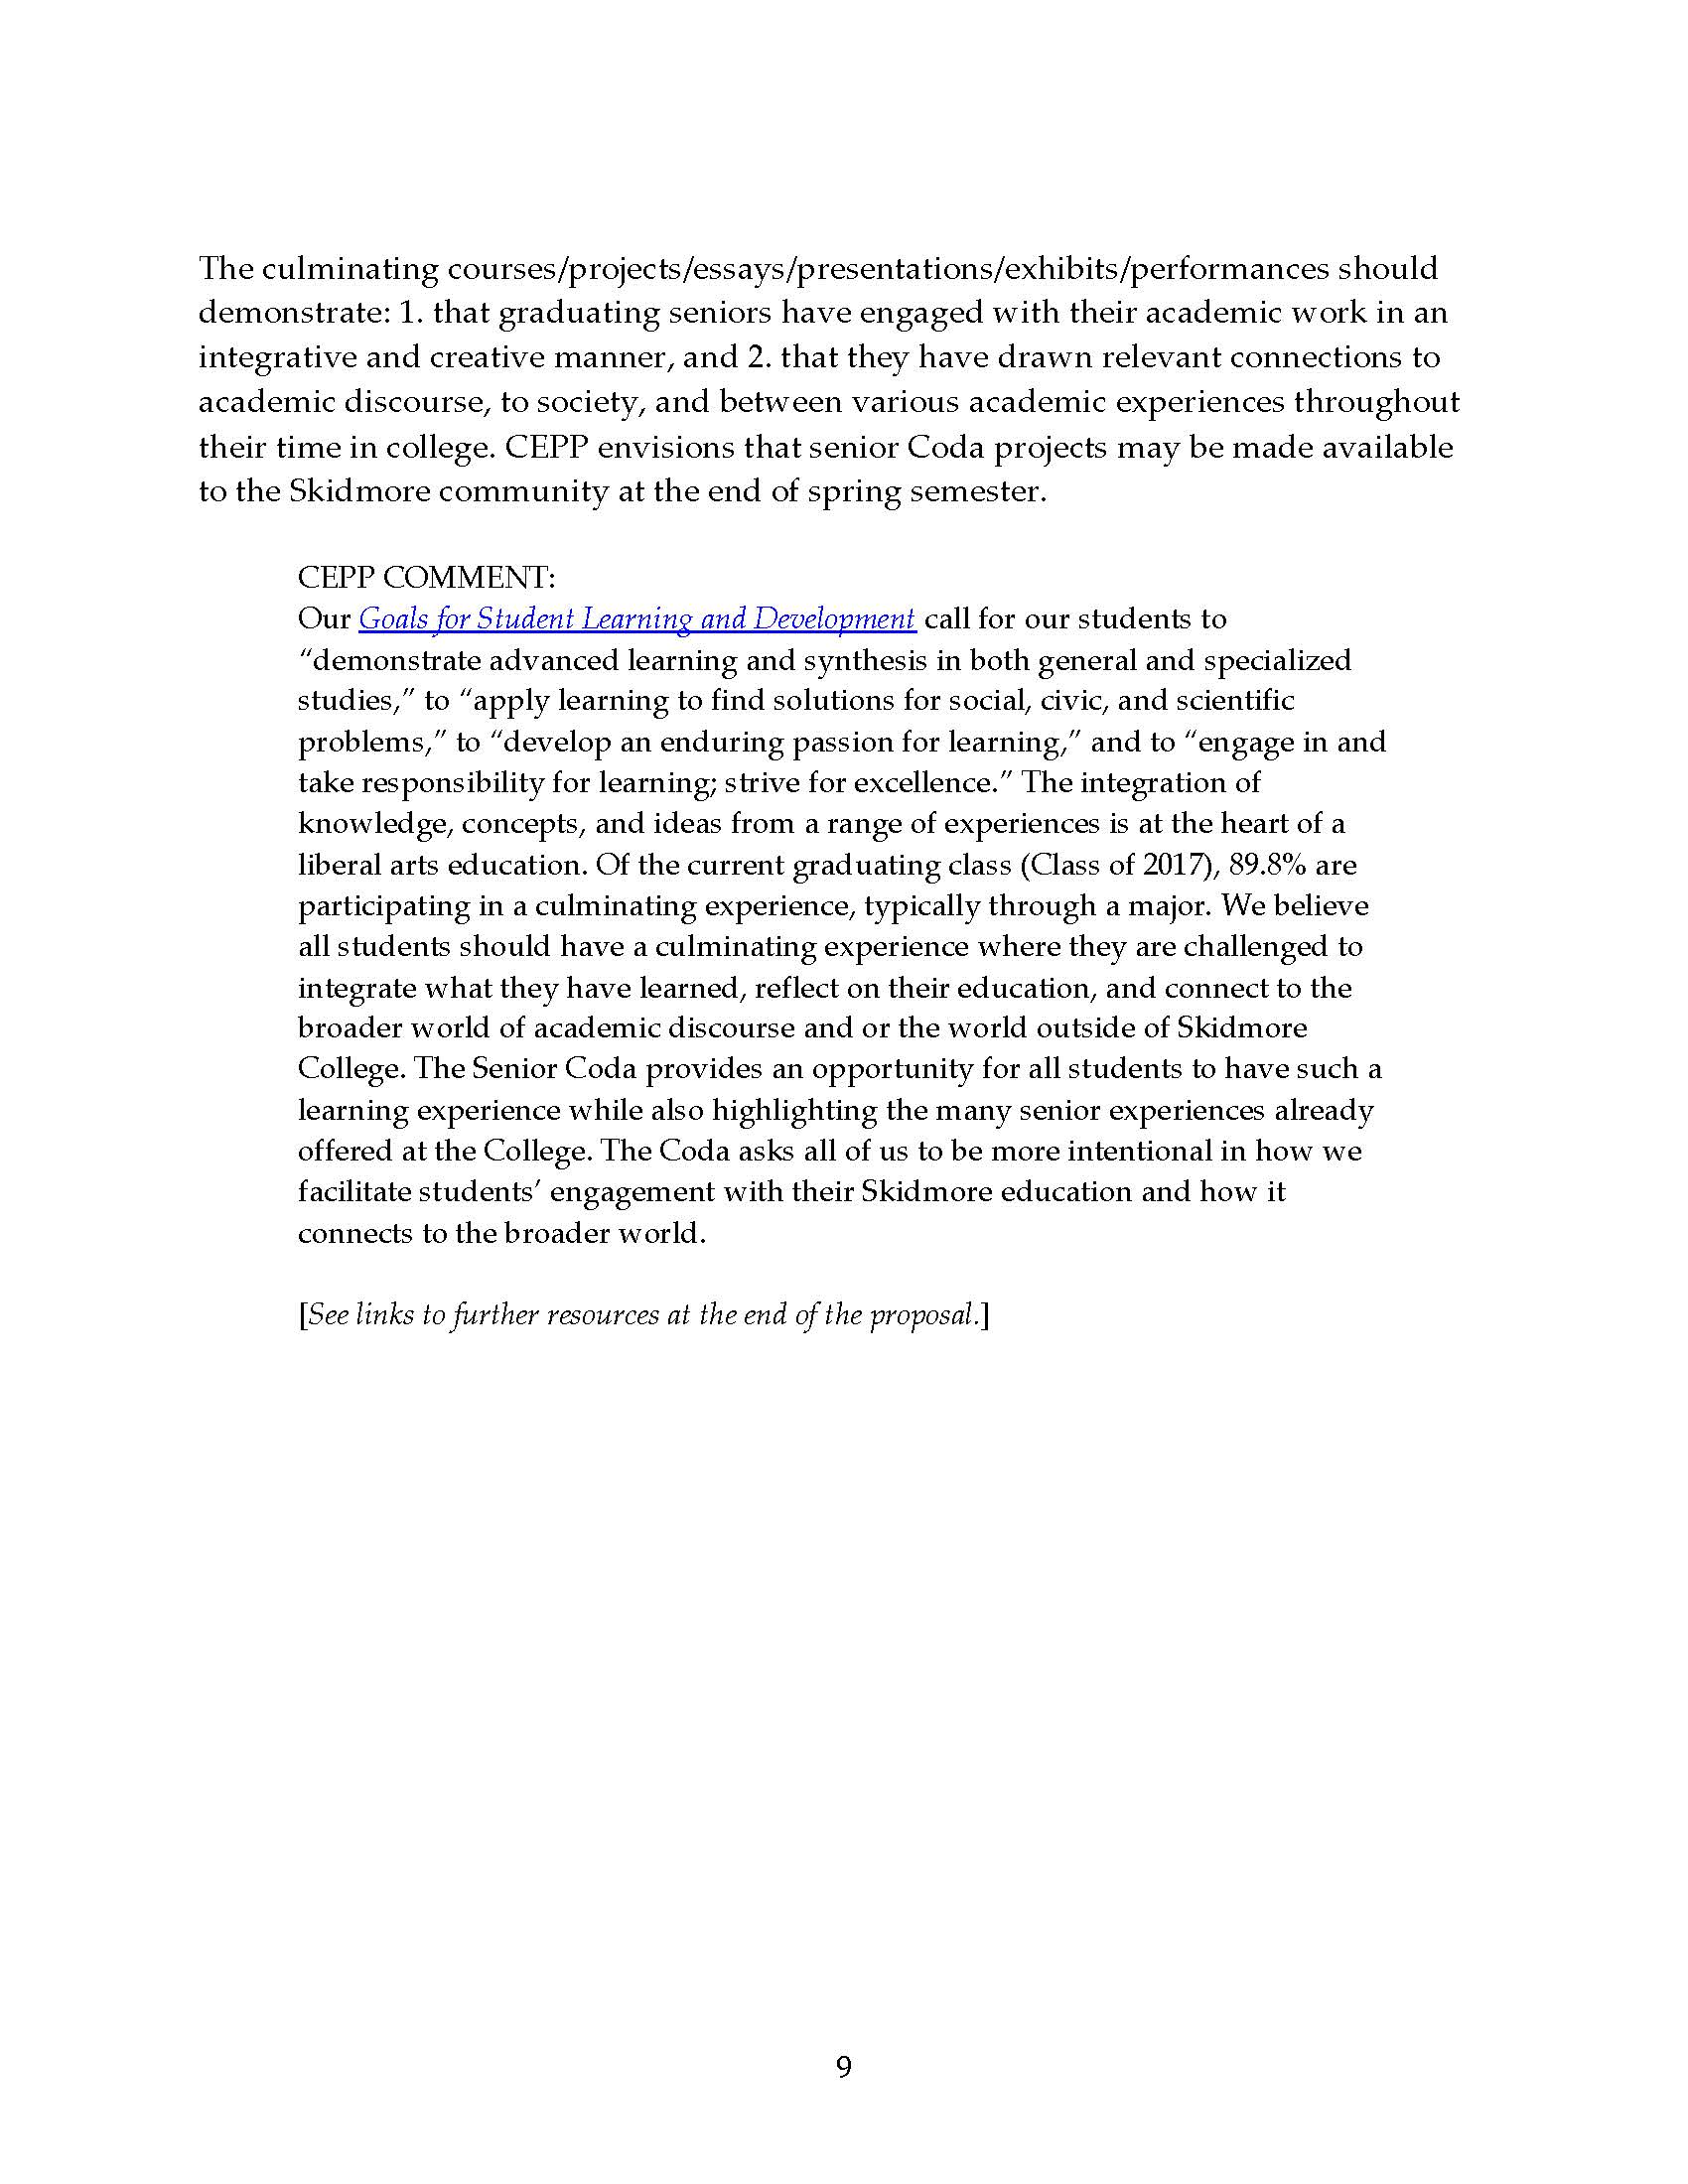 General Education Proposal February 28 2017_Page_09.jpg